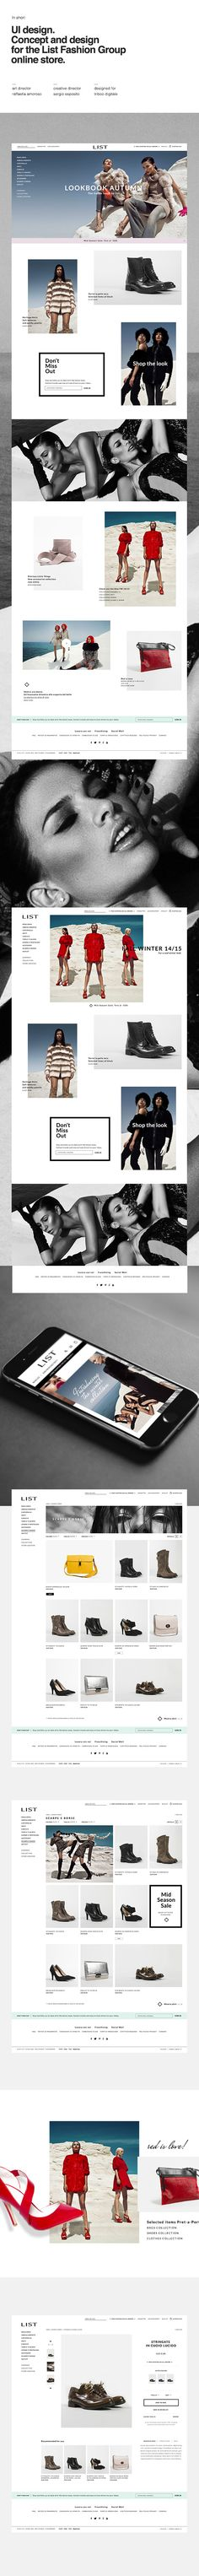 List Fashion Group online store on Behance Fashion site inspiration, nice imagery, use of responsive, colours